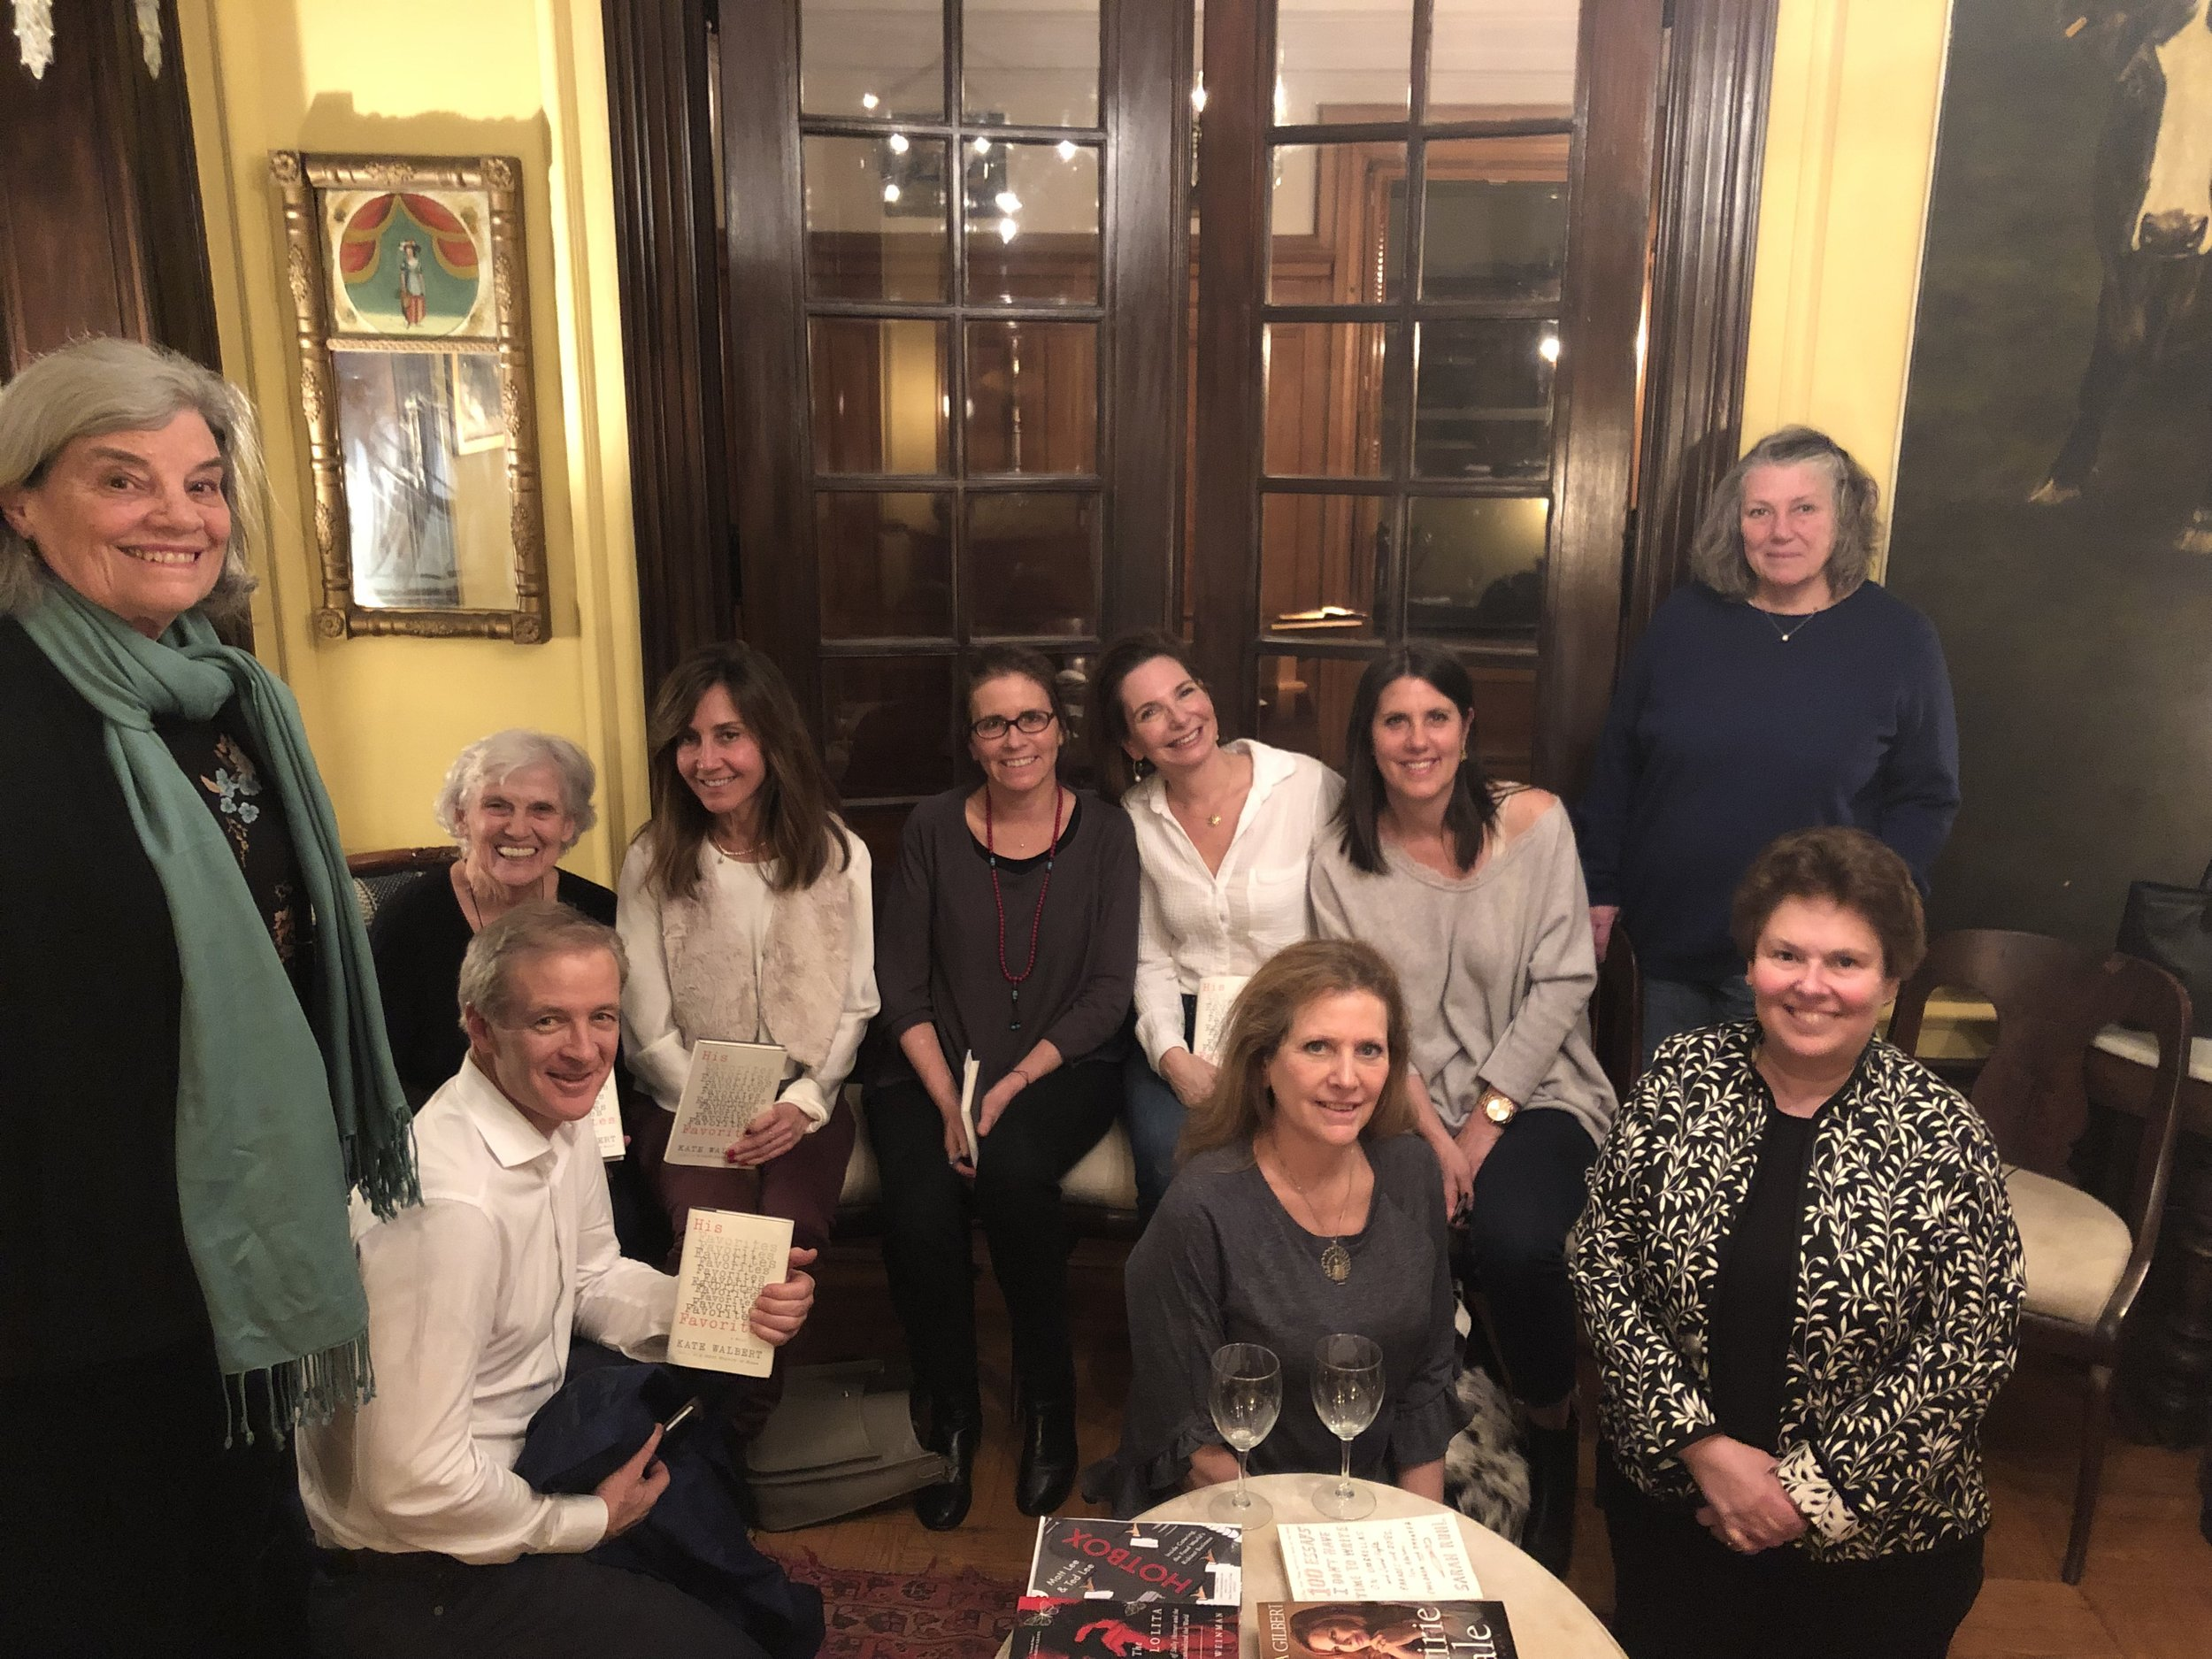 Novelist Kate Walbert at her book group for HIS FAVORITES